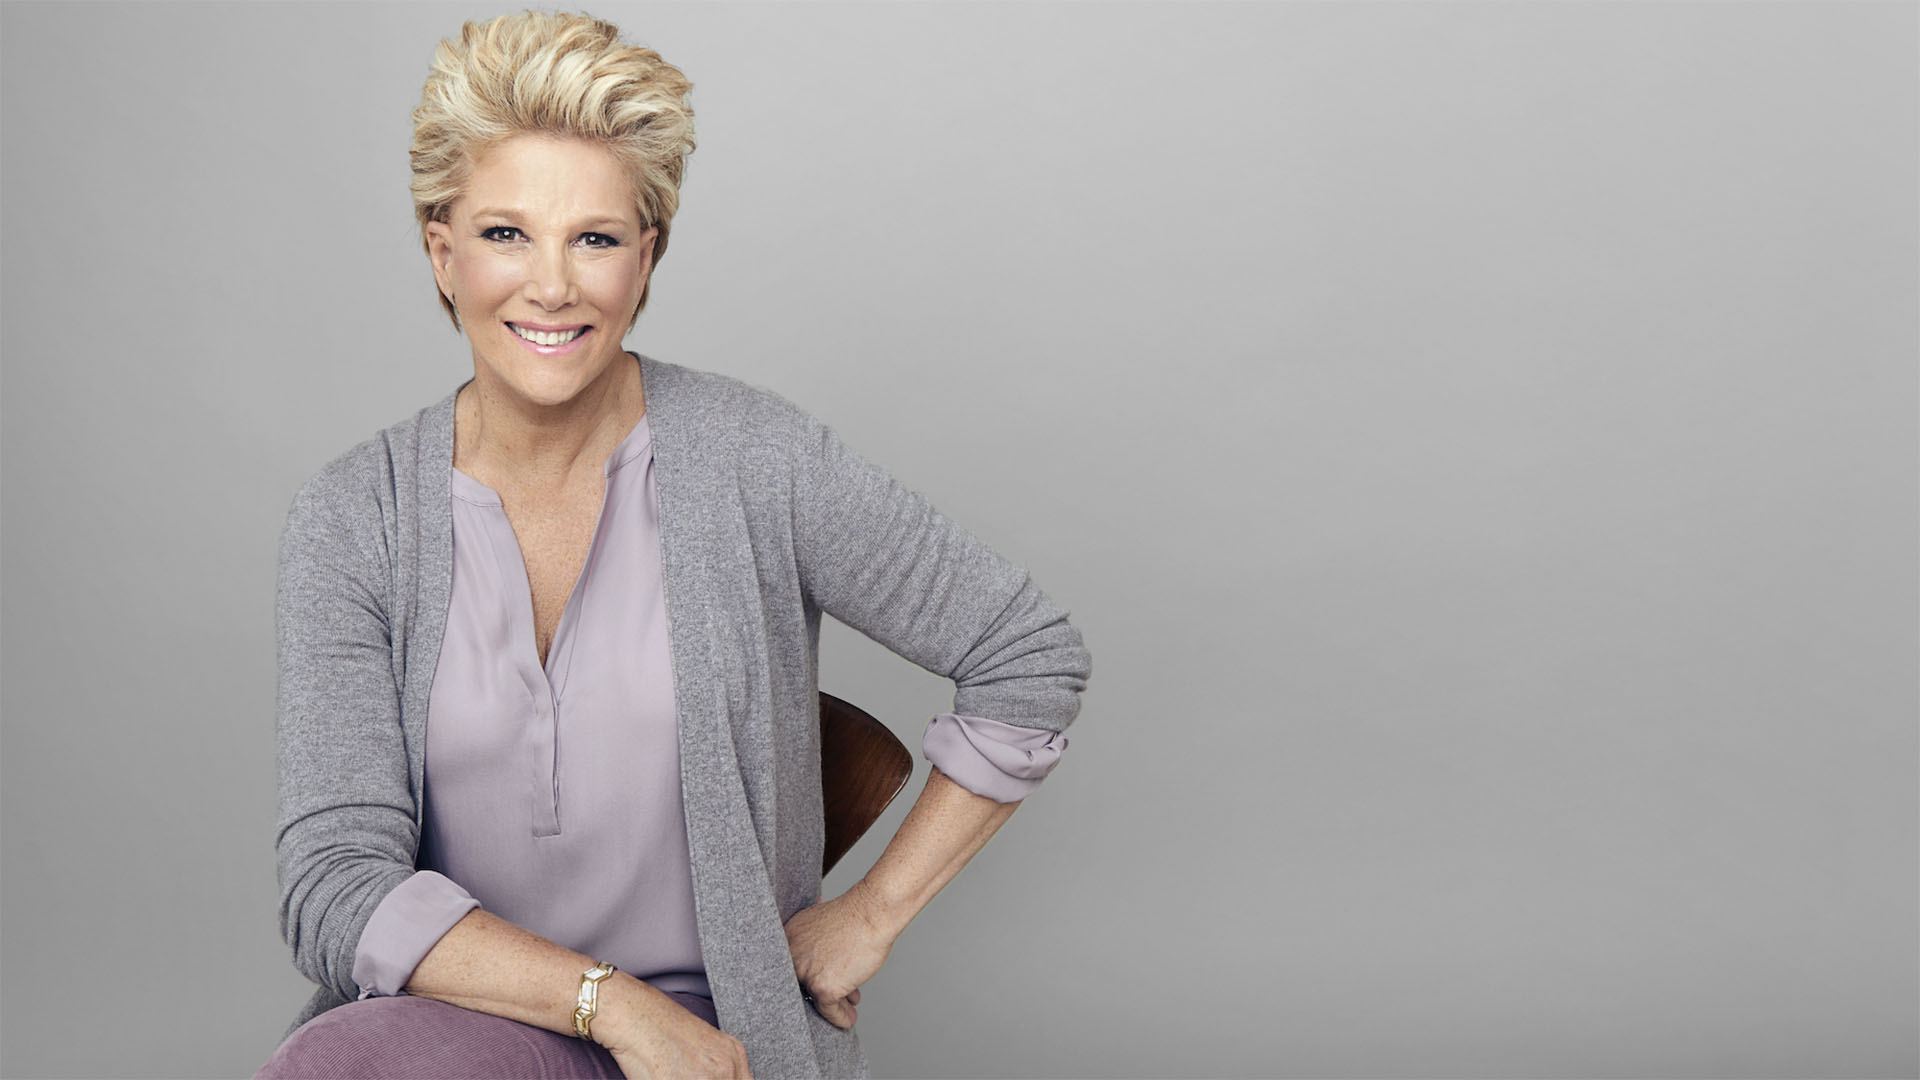 Joan Lunden on overcoming fear of public speaking, finding a rewarding new mission and her admiration for Laura W. Bush Institute